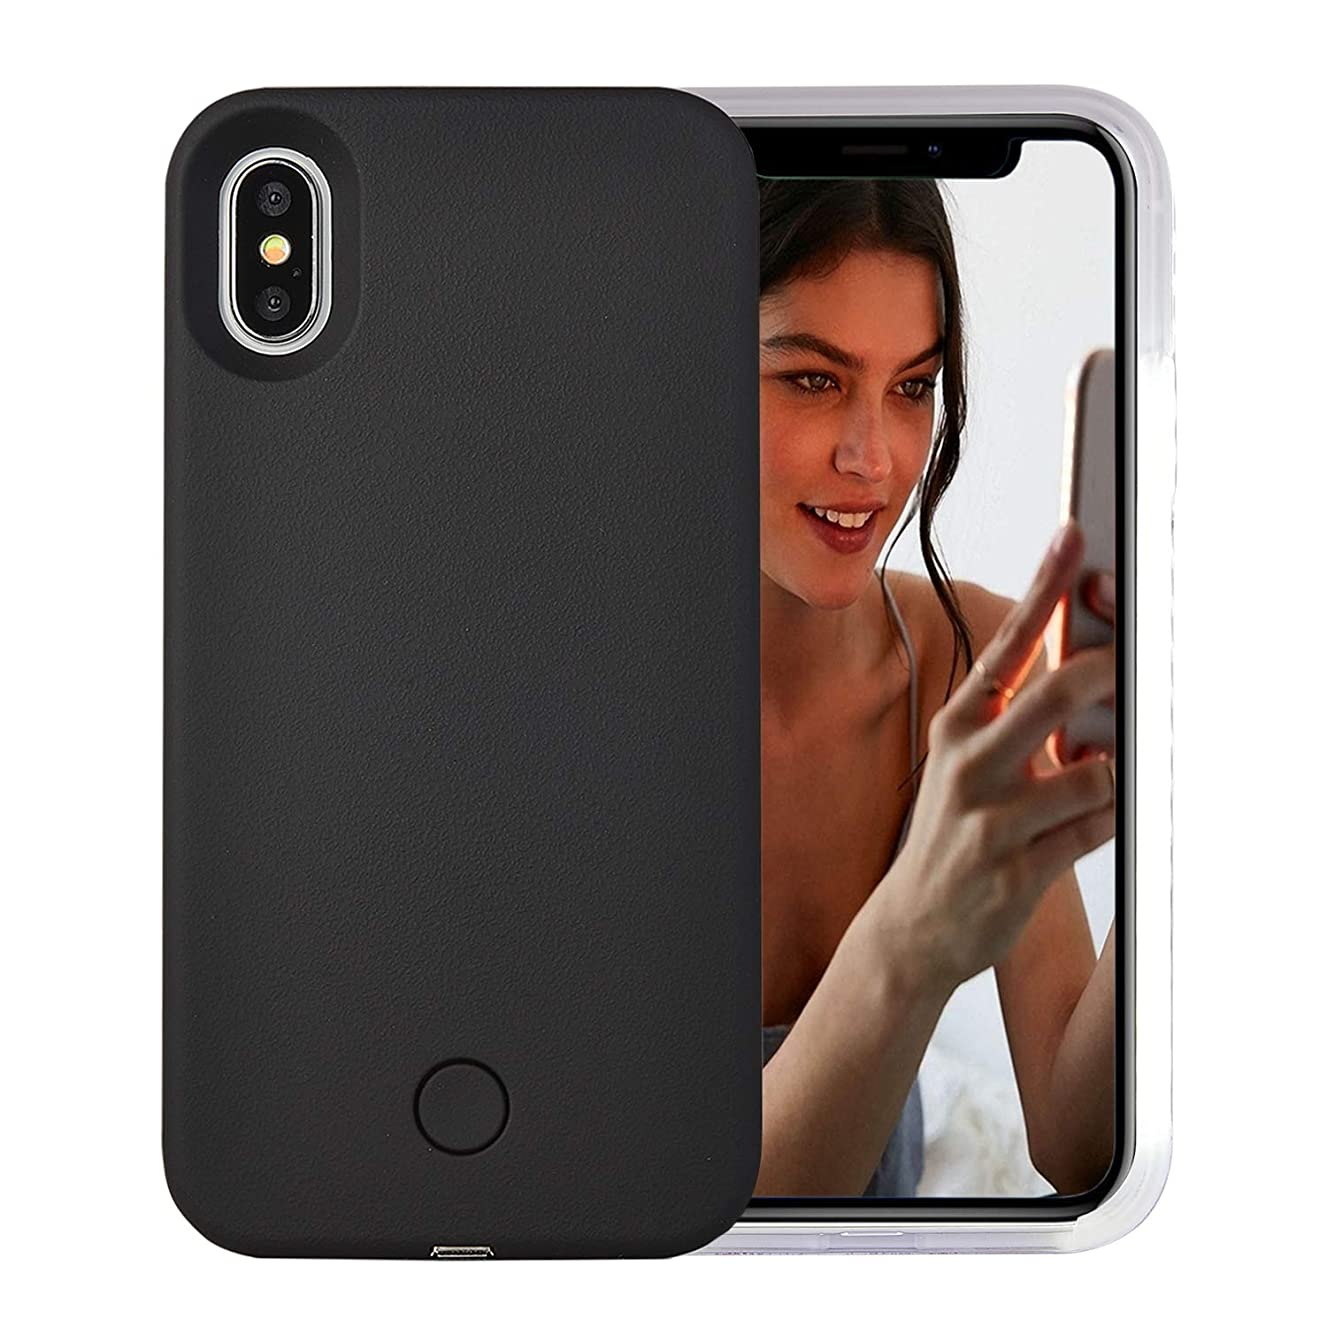 iPhone Xs Max Case, AUYOUWEI LED Illuminated Selfie Light Case Cover [Rechargeable] Light Up Luminous Selfie Flashlight Cell Phone Case for iPhone Xs Max 6.5inch (Black)